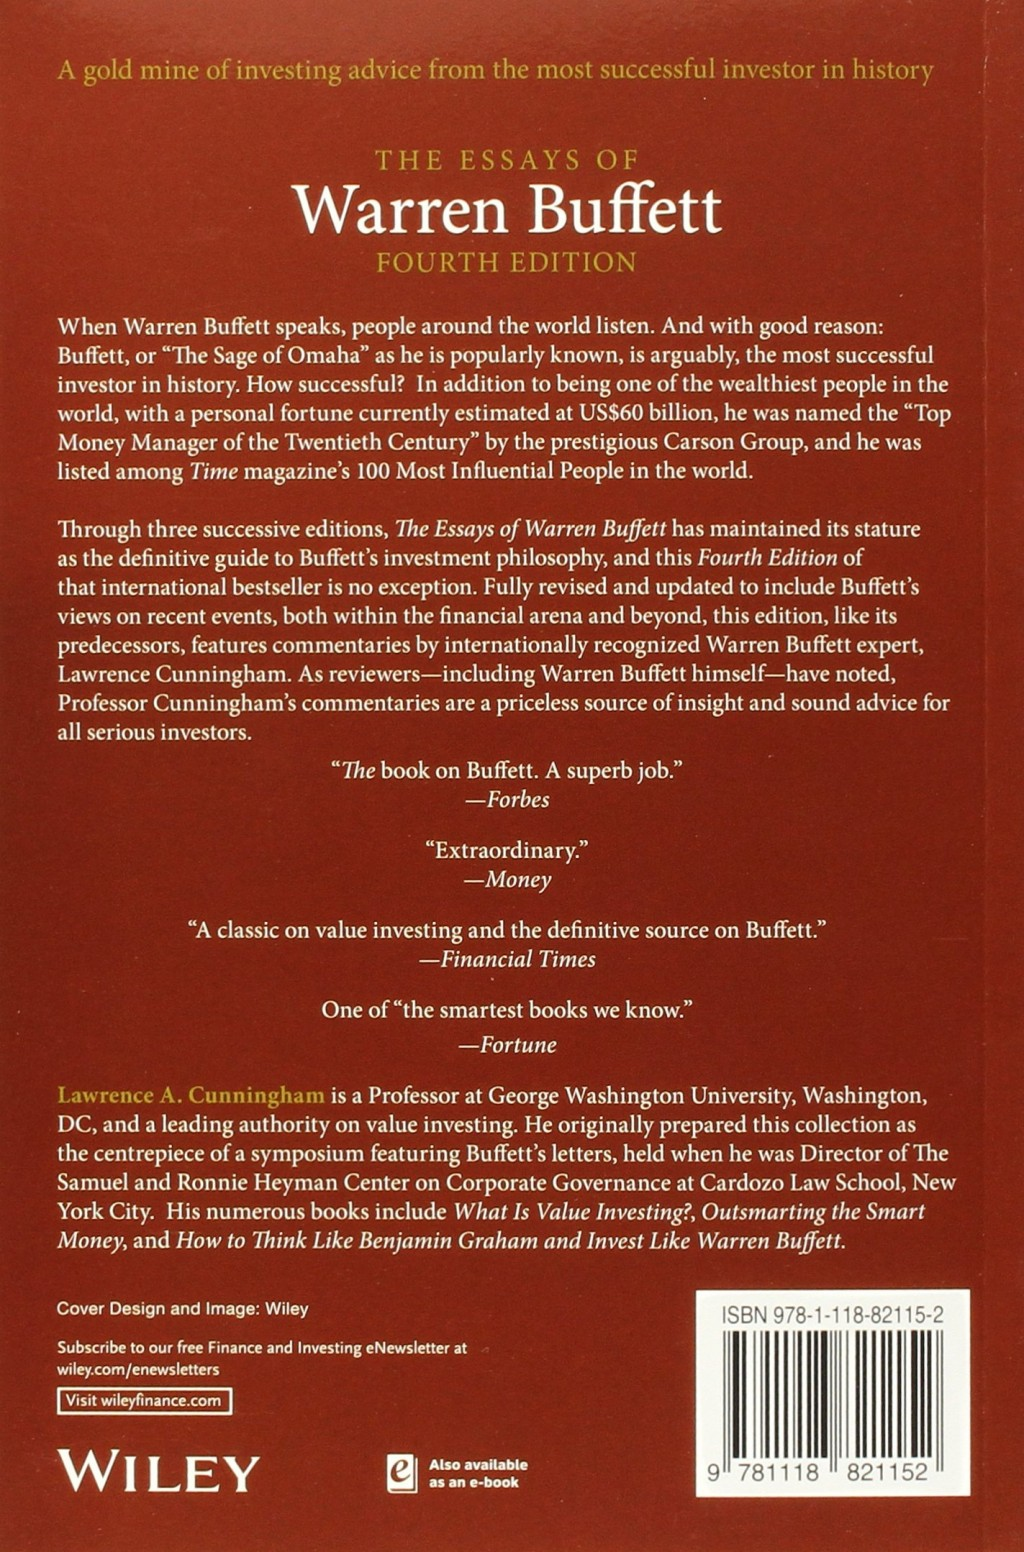 018 Essay Example 91viw96oq0l The Essays Of Warren Buffett Lessons For Corporate Remarkable America Third Edition 3rd Second Pdf Audio Book Large